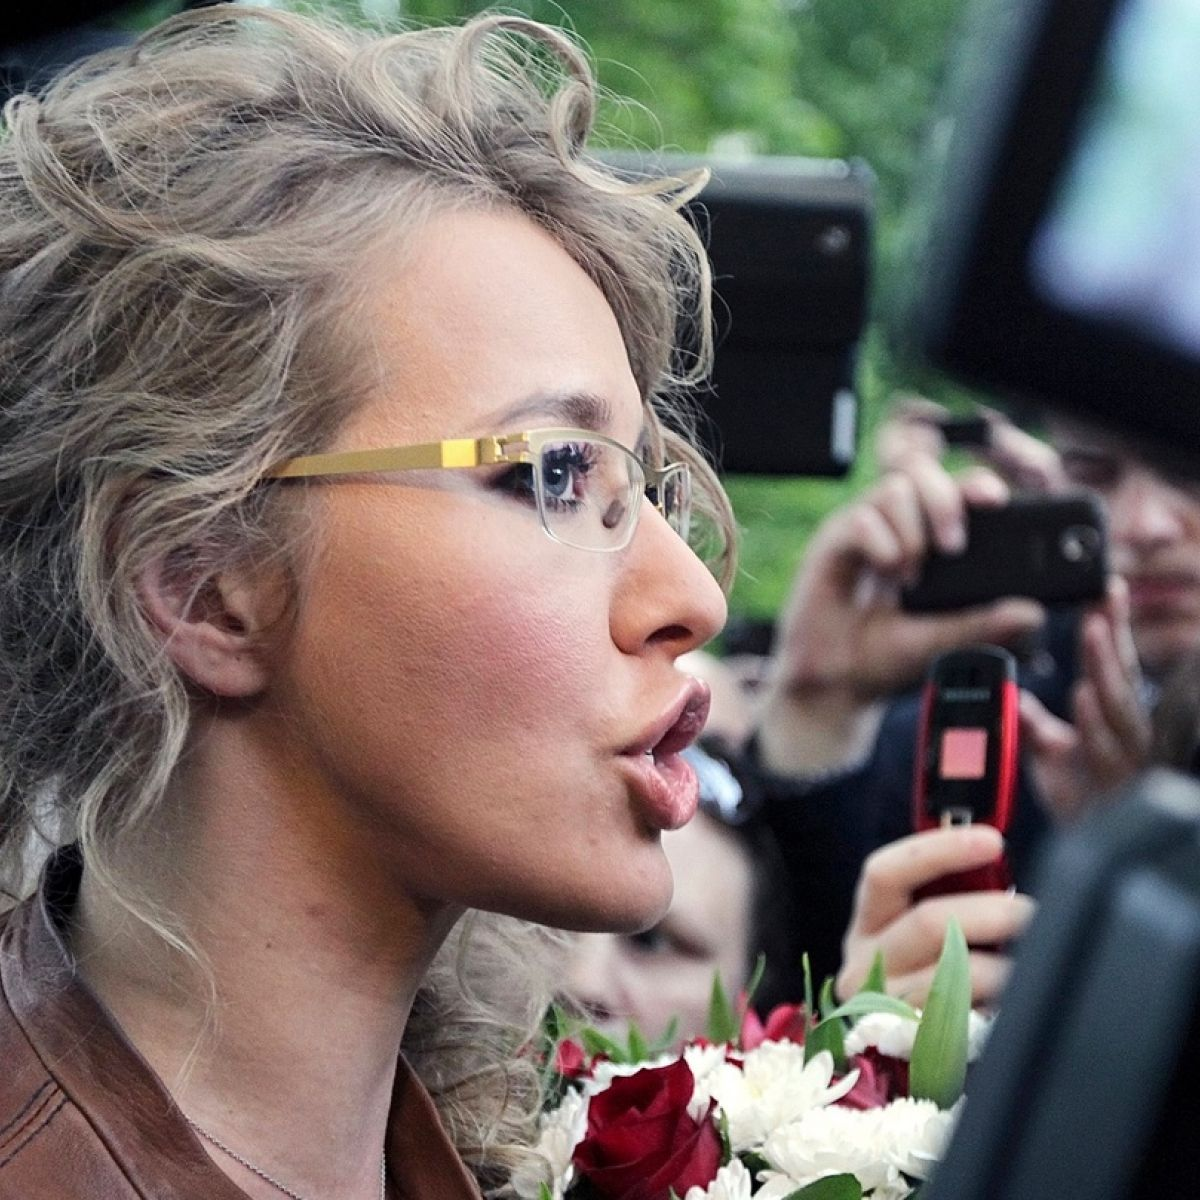 Ksenia Sobchak lost the meaning of life 11/17/2009 18